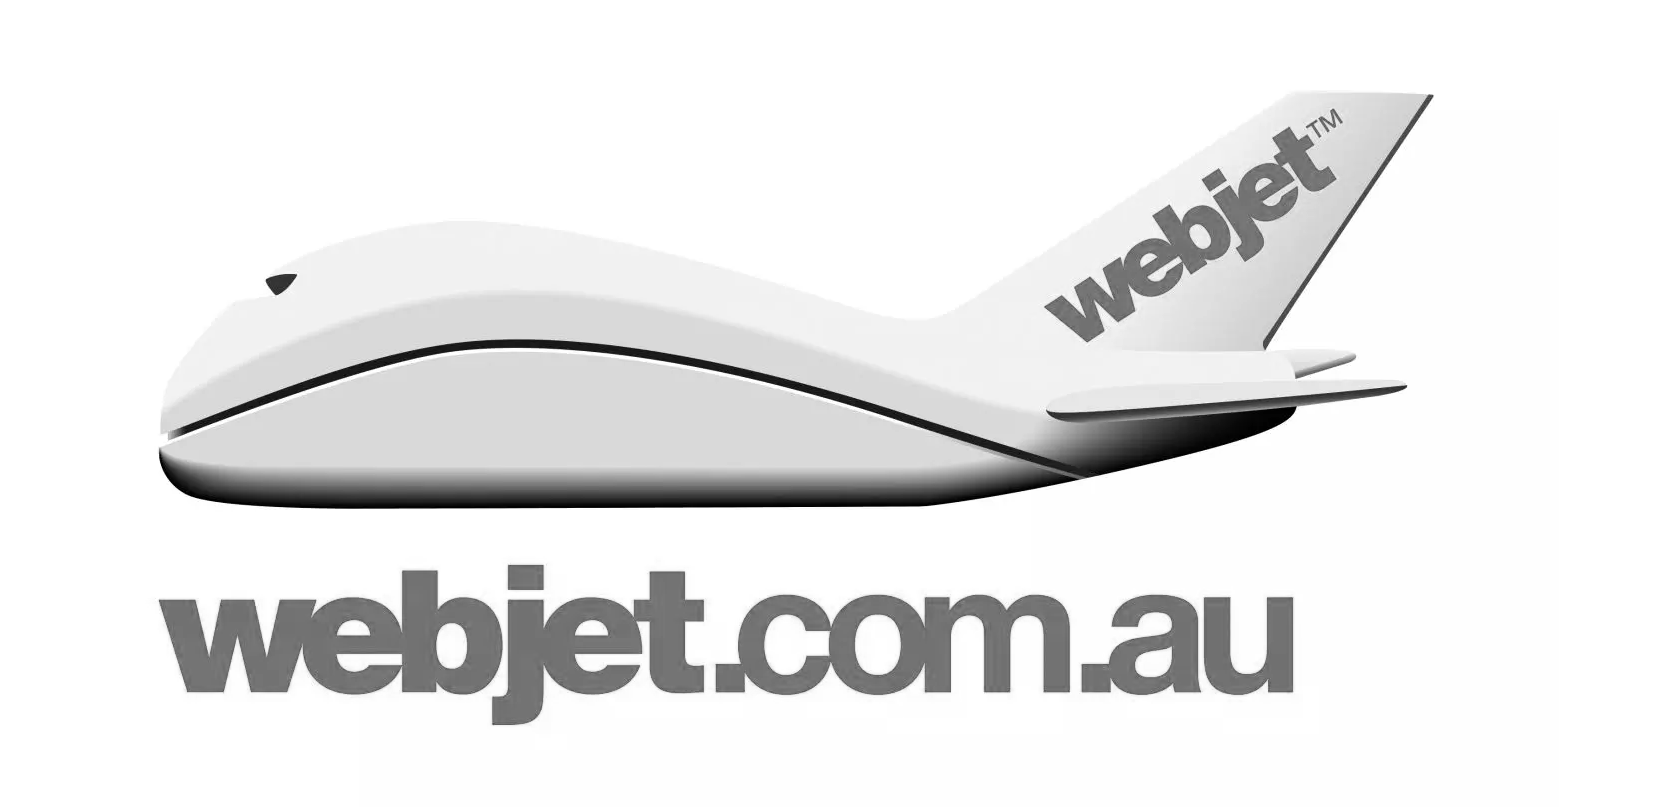 Macquarie Cloud Services are Australia's specialists in cloud services for business - businesses like webjet